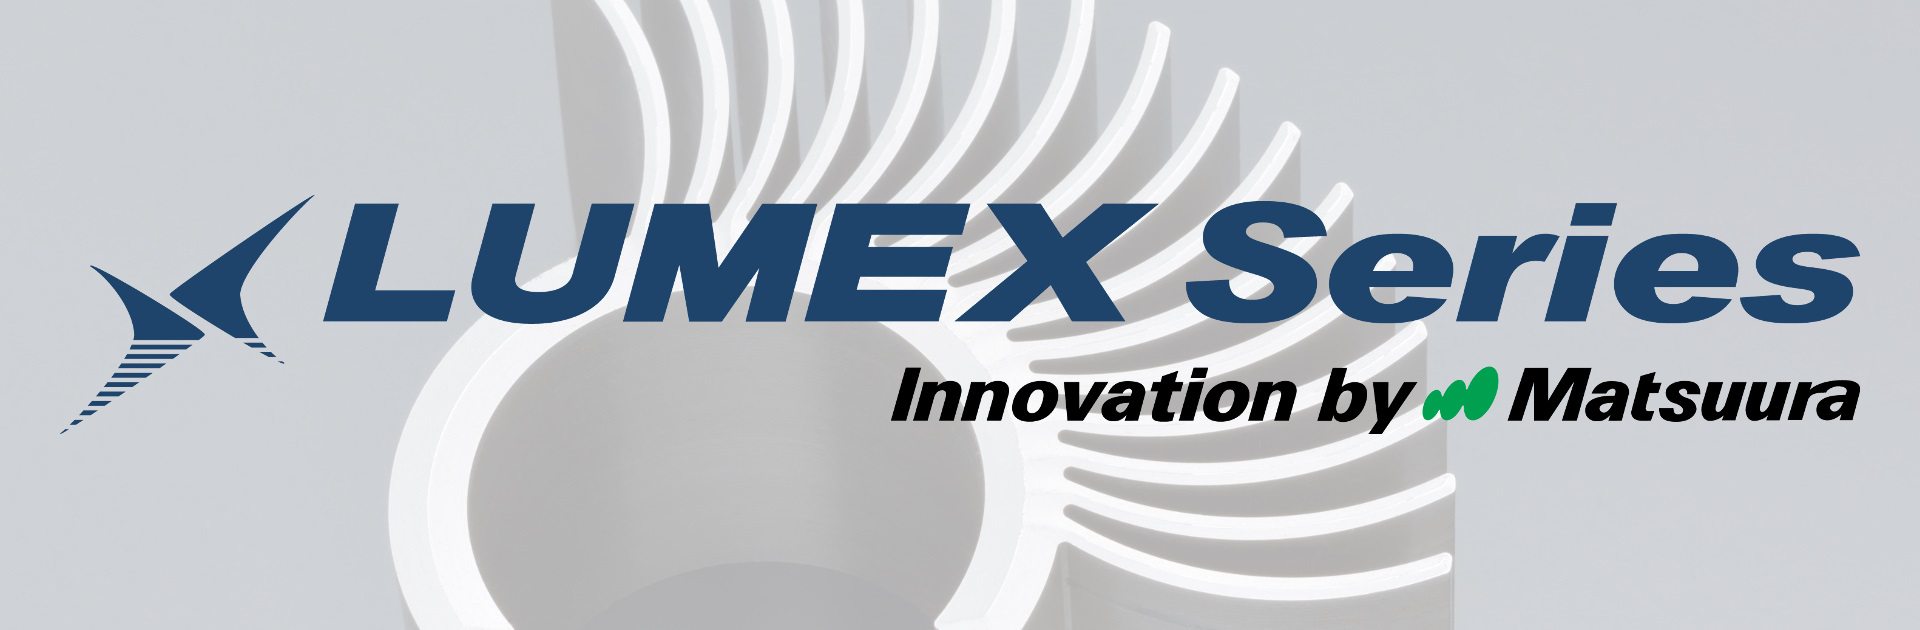 LUMEX; LUMEX Avance-Series; LUMEX-Series; lasersintern; Additive Manufacturing; AM